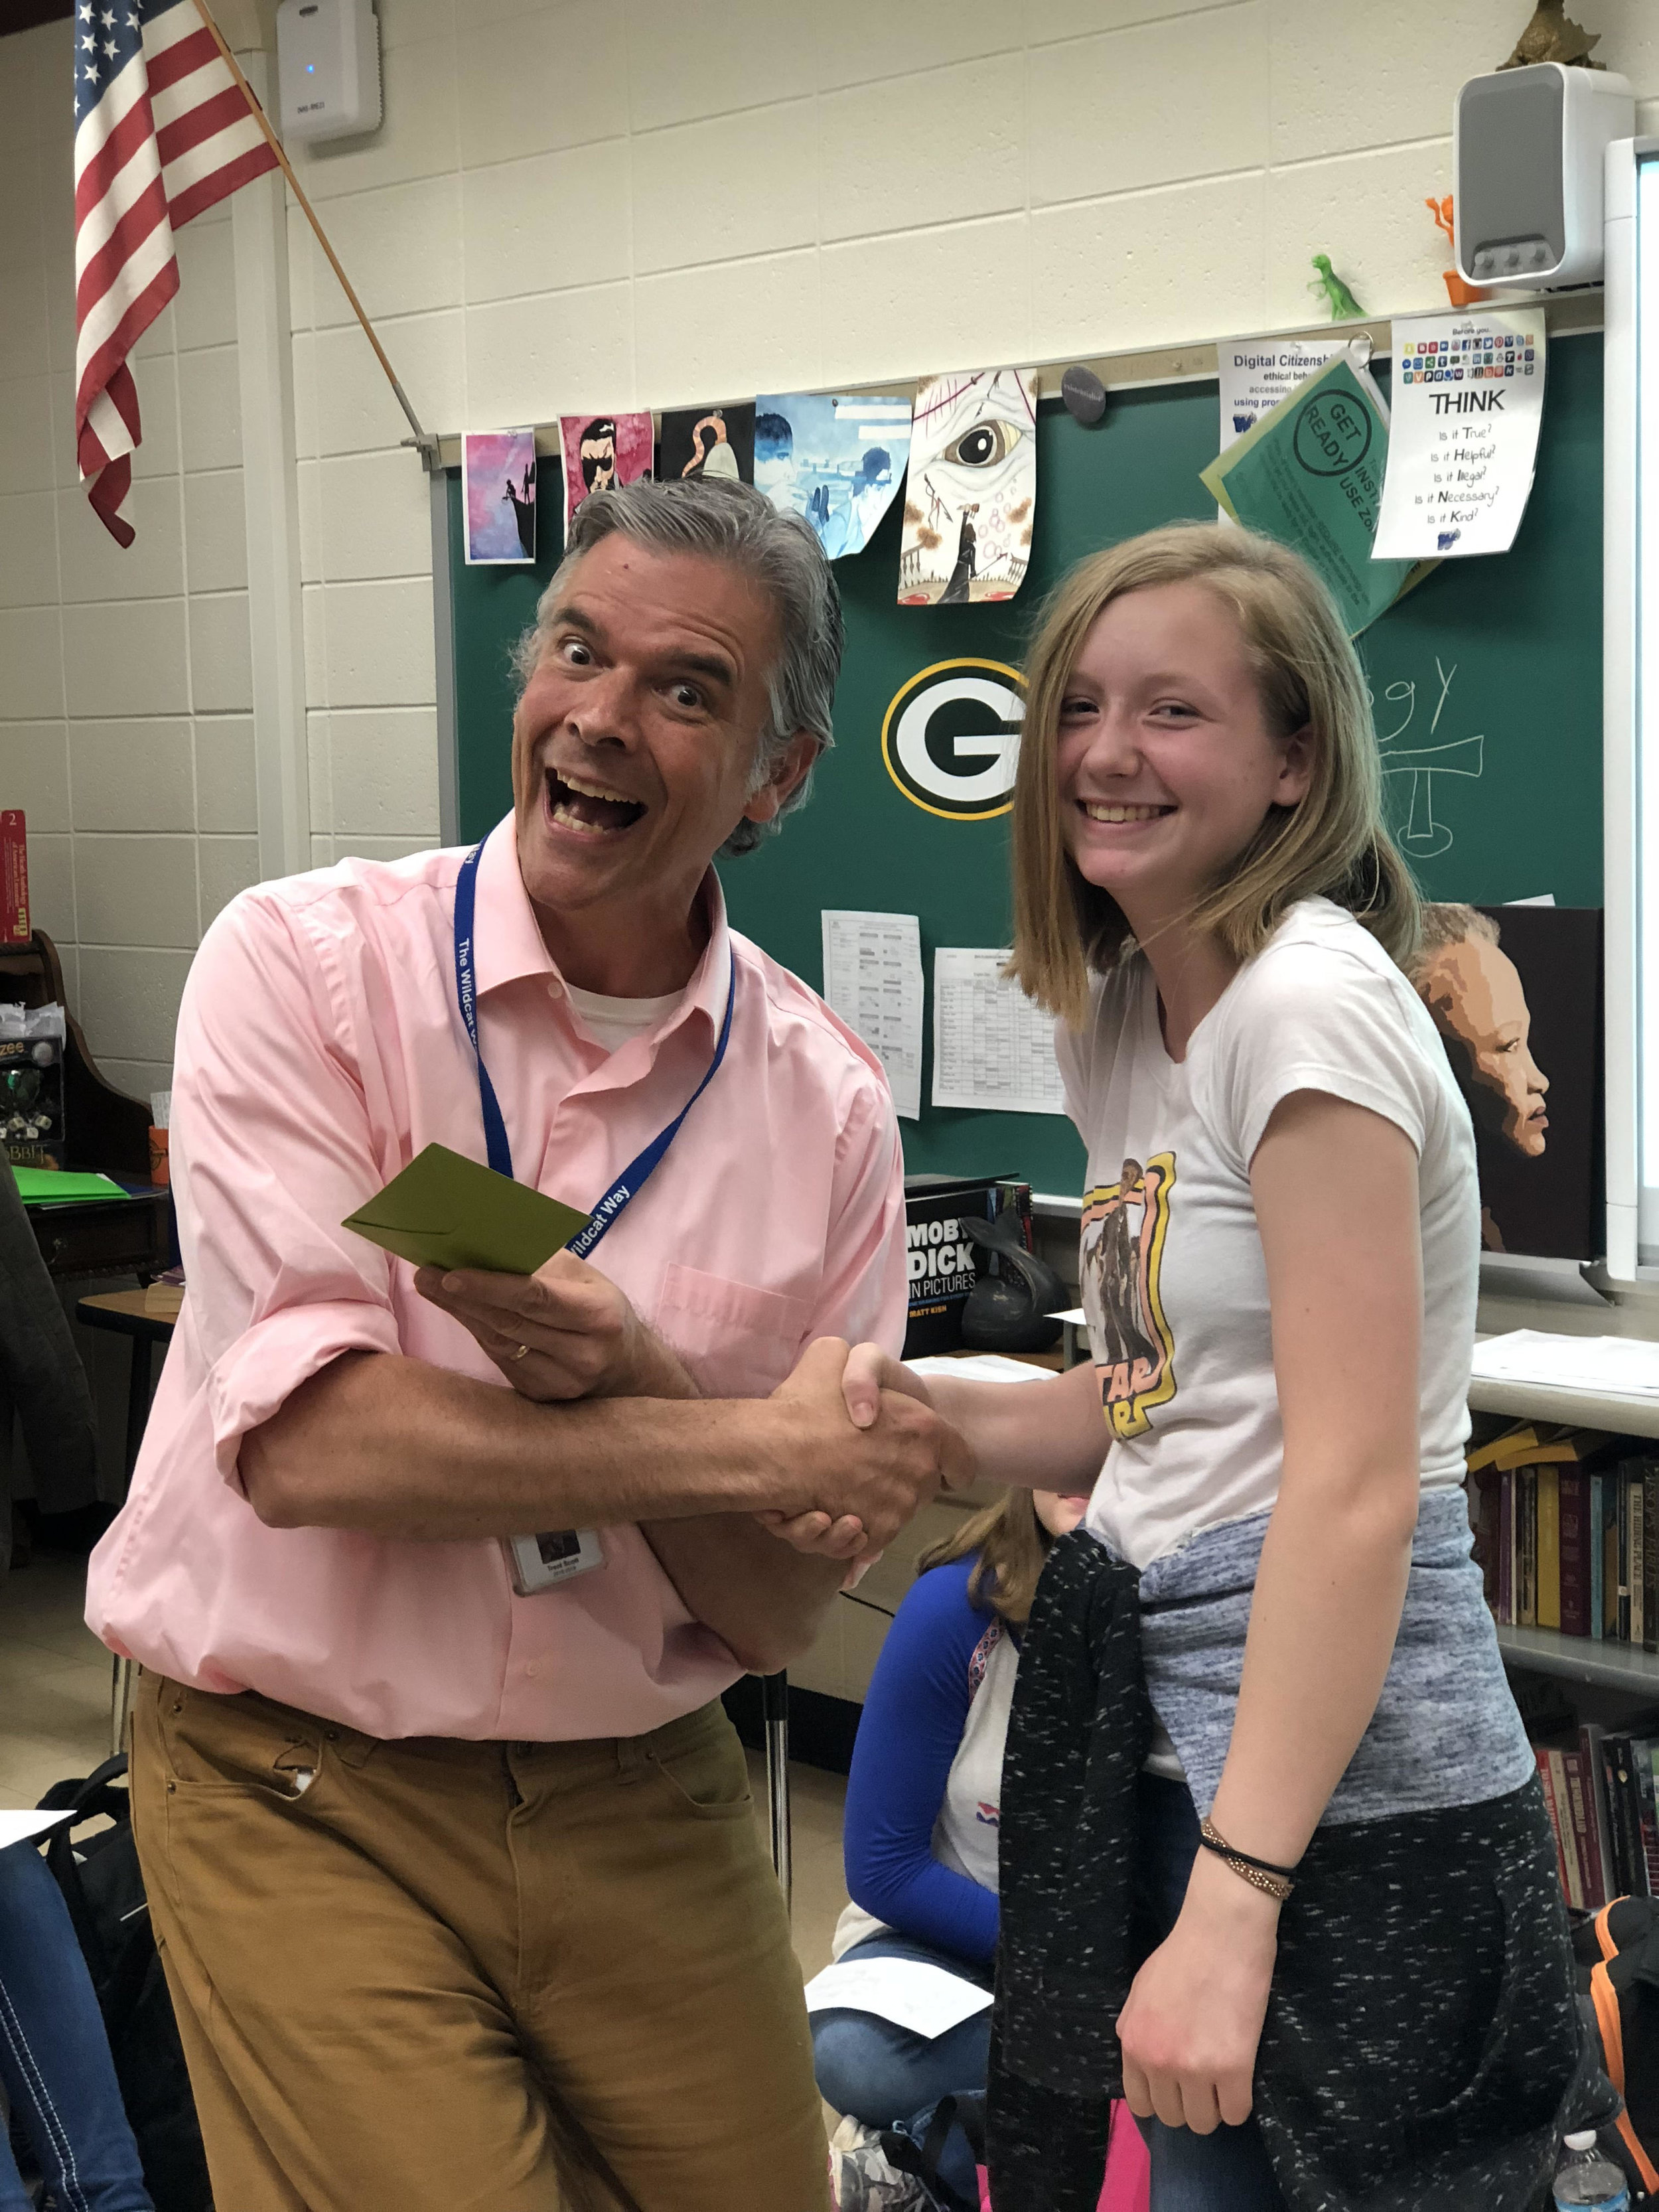 Paige Helfrich - Paige wrote an opinion column for the spread, and came in for help multiple times as a new writer to refine her article. She stuck around and showed up at production too! Thanks for your help Paige!